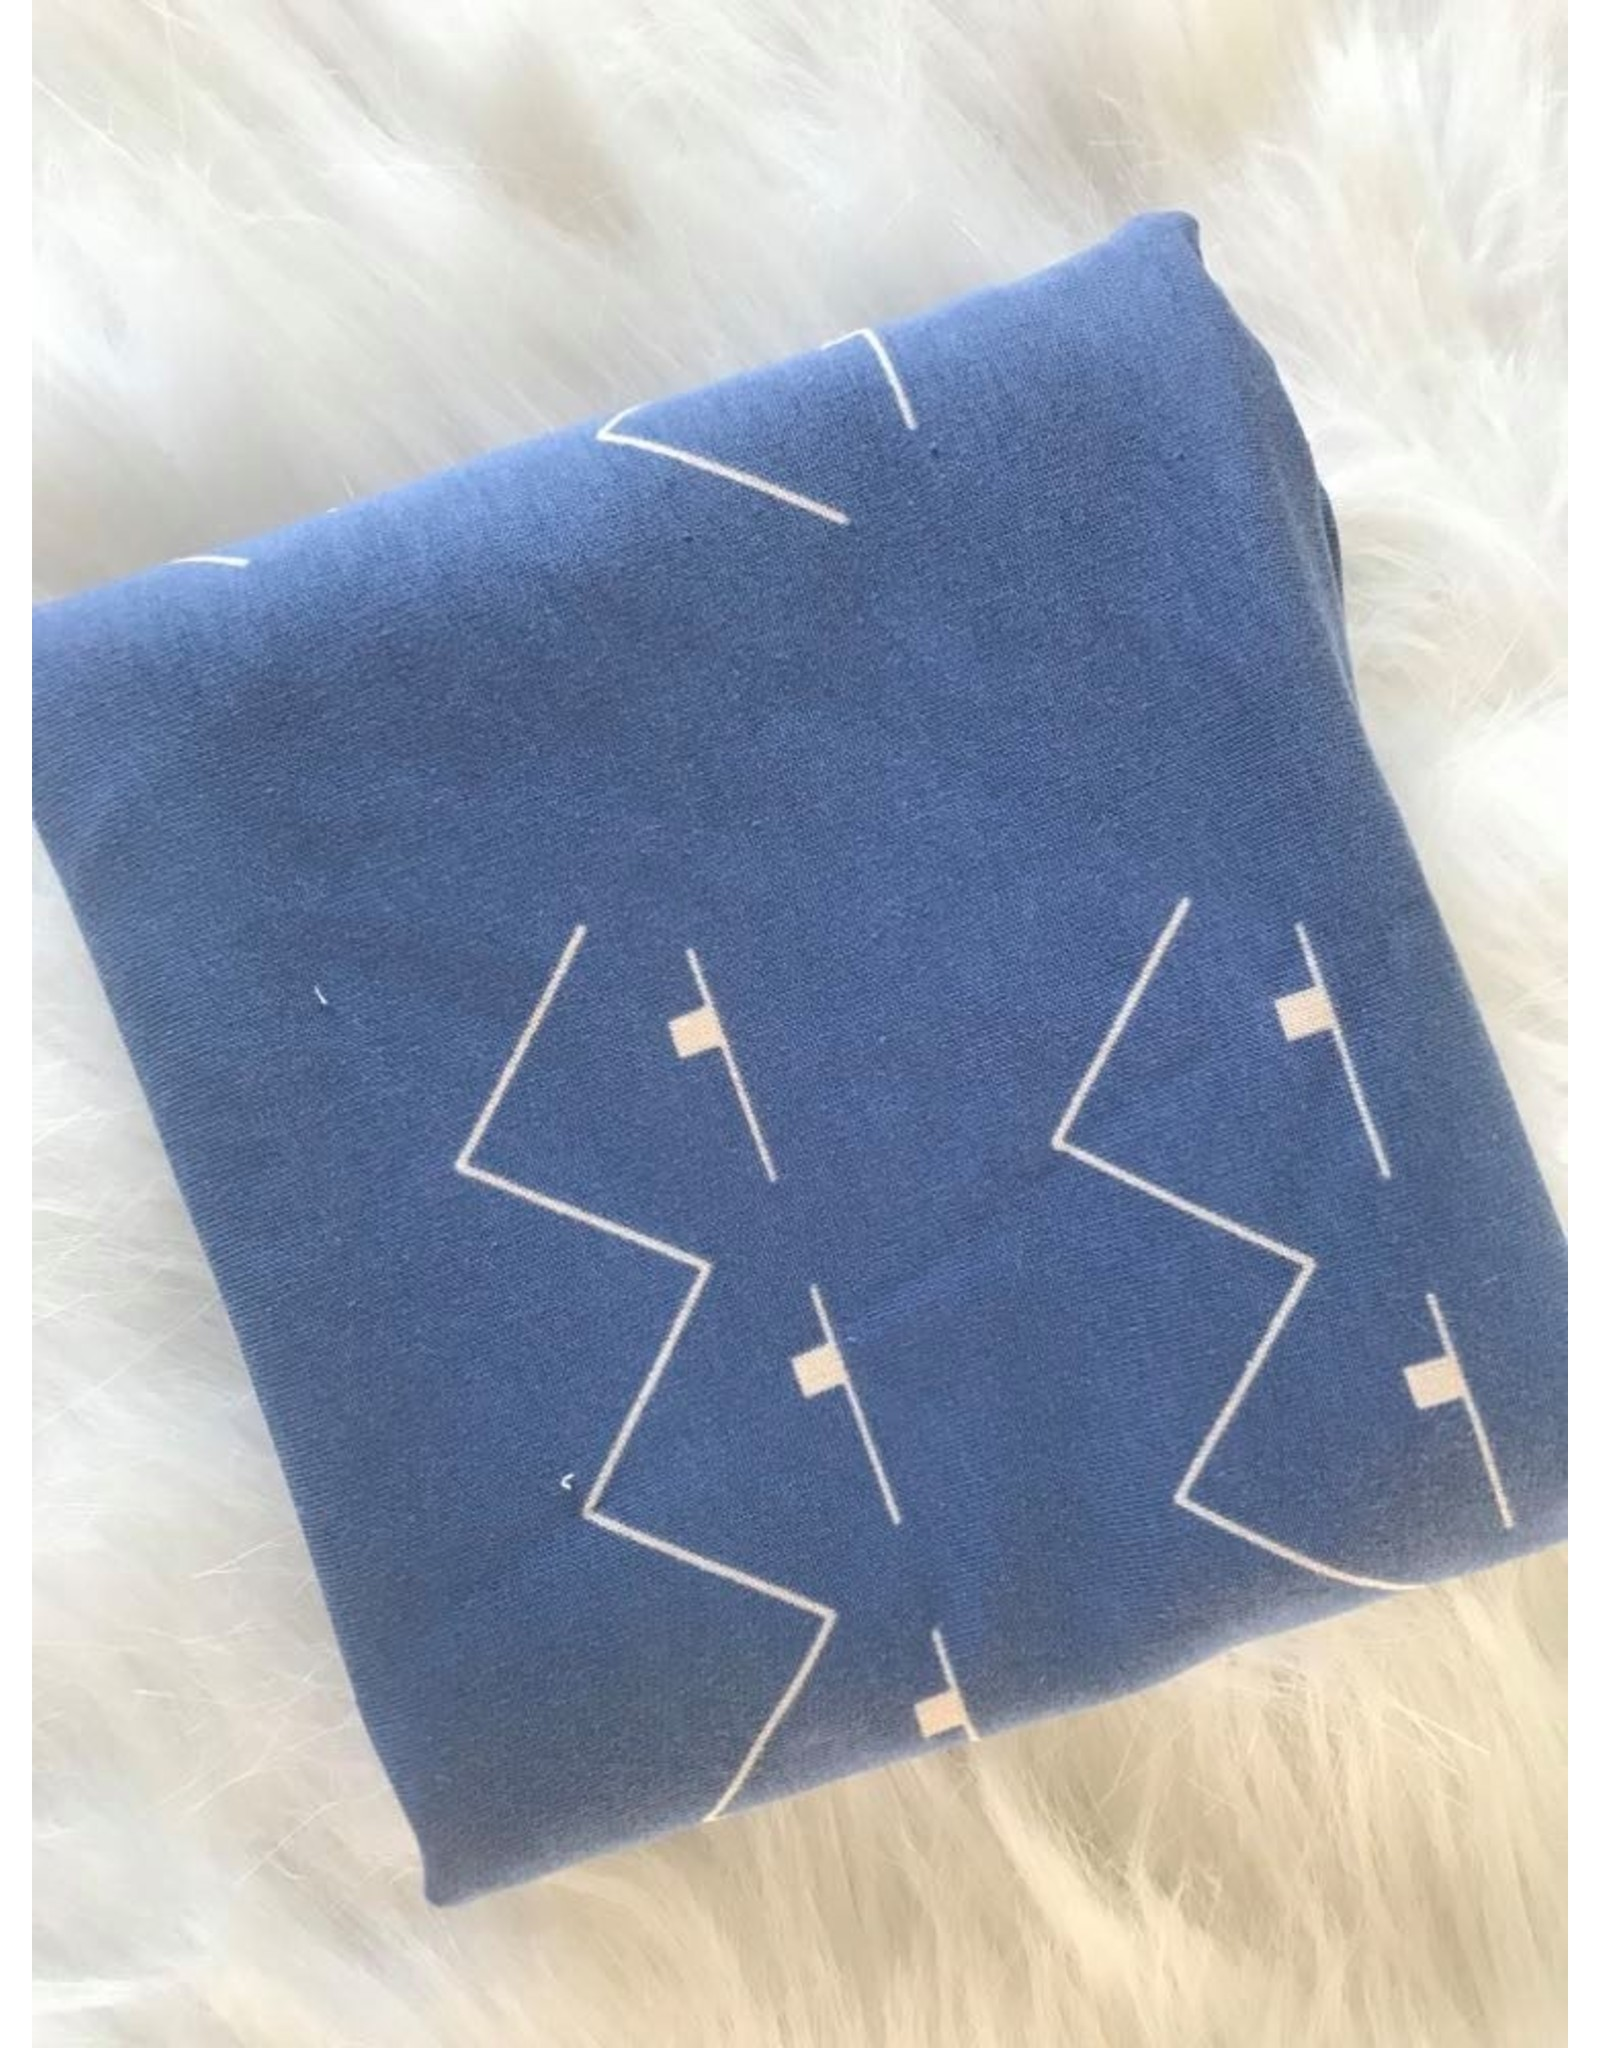 About Blue Fabrics Victory Sky Blue COUPON 45 cm